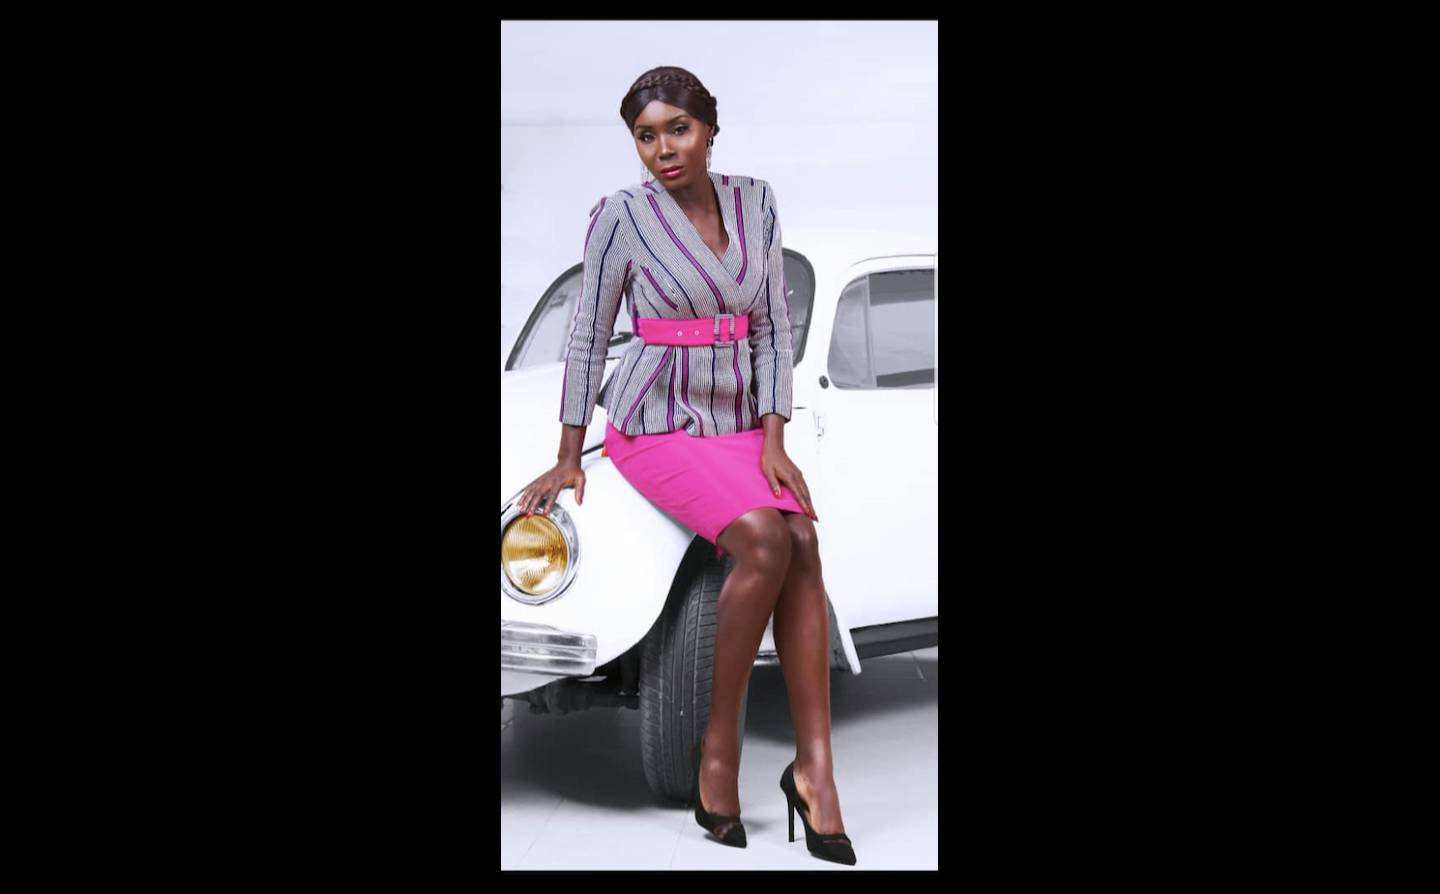 Fashion is embracing new fabric trend from Africa: Kente